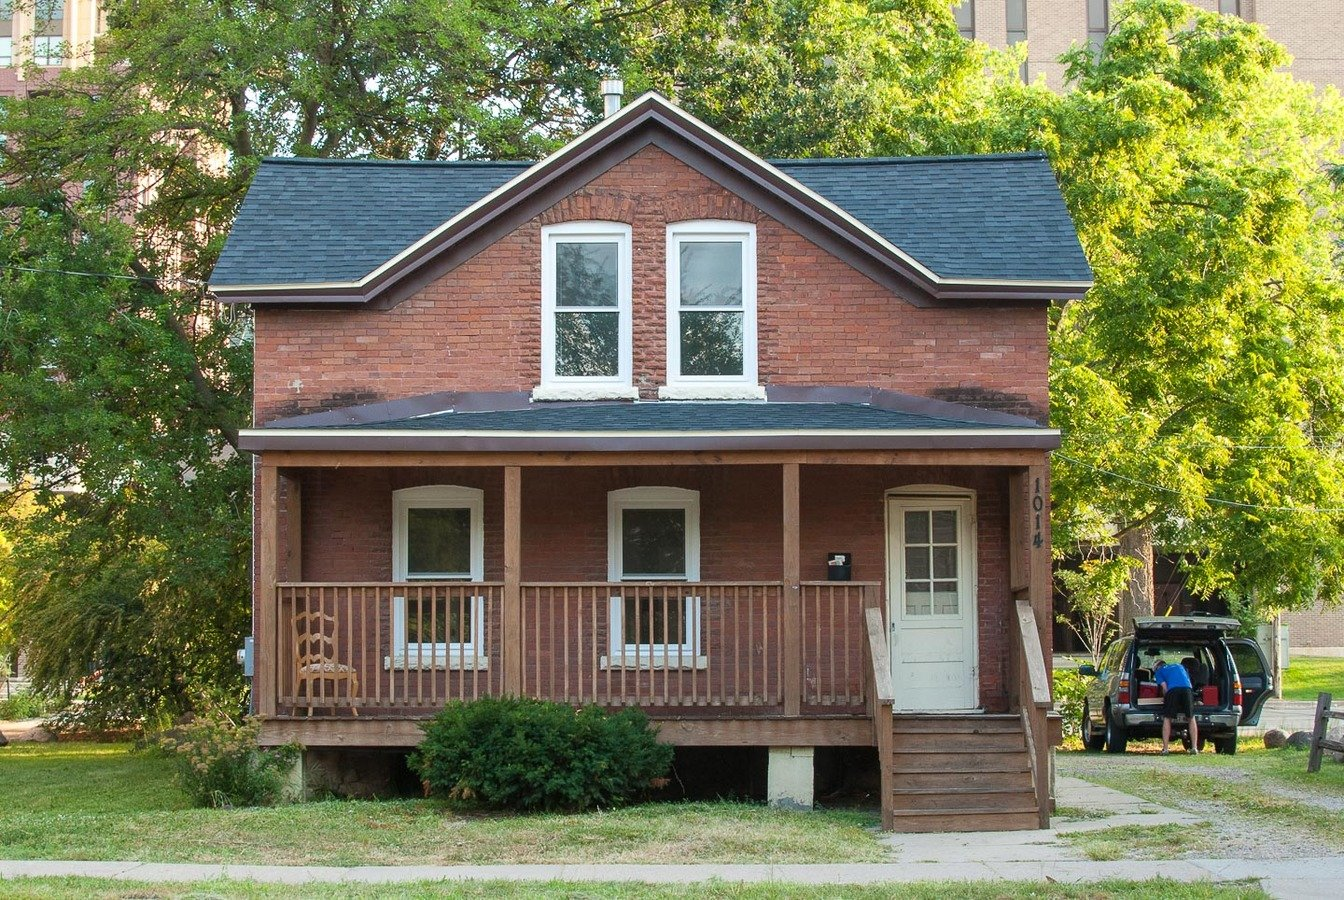 3 Bedrooms 1 Bathroom House for rent at 1014 W Dayton St in Madison, WI